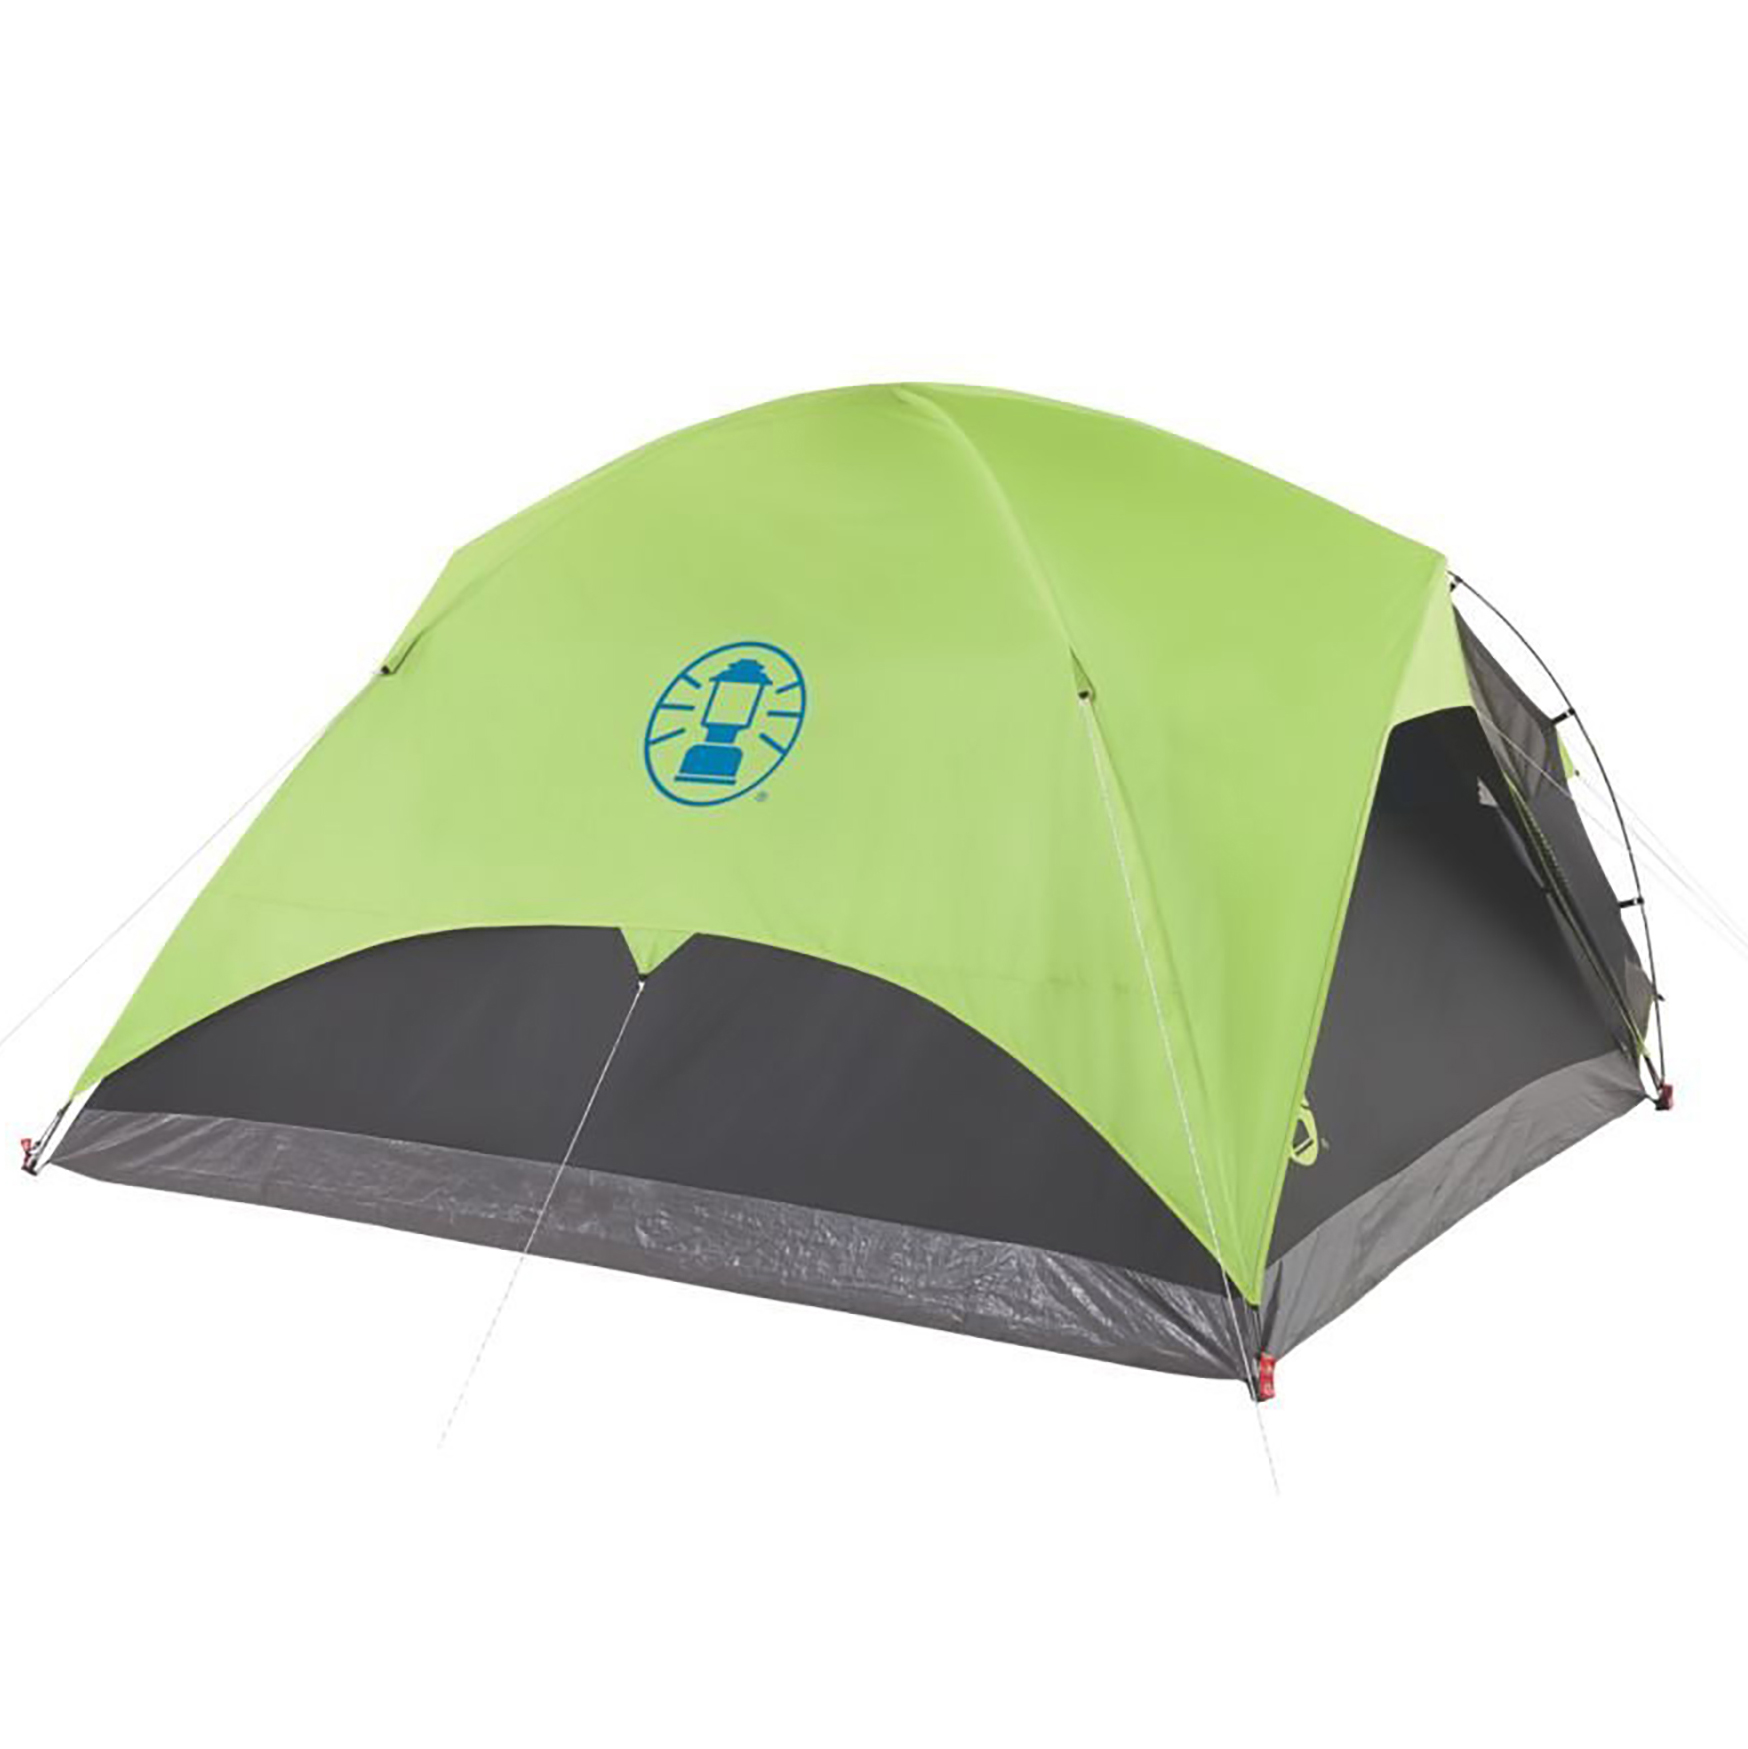 Best Gifts for Men: 4-Person Dark Room Tent With Screen Room